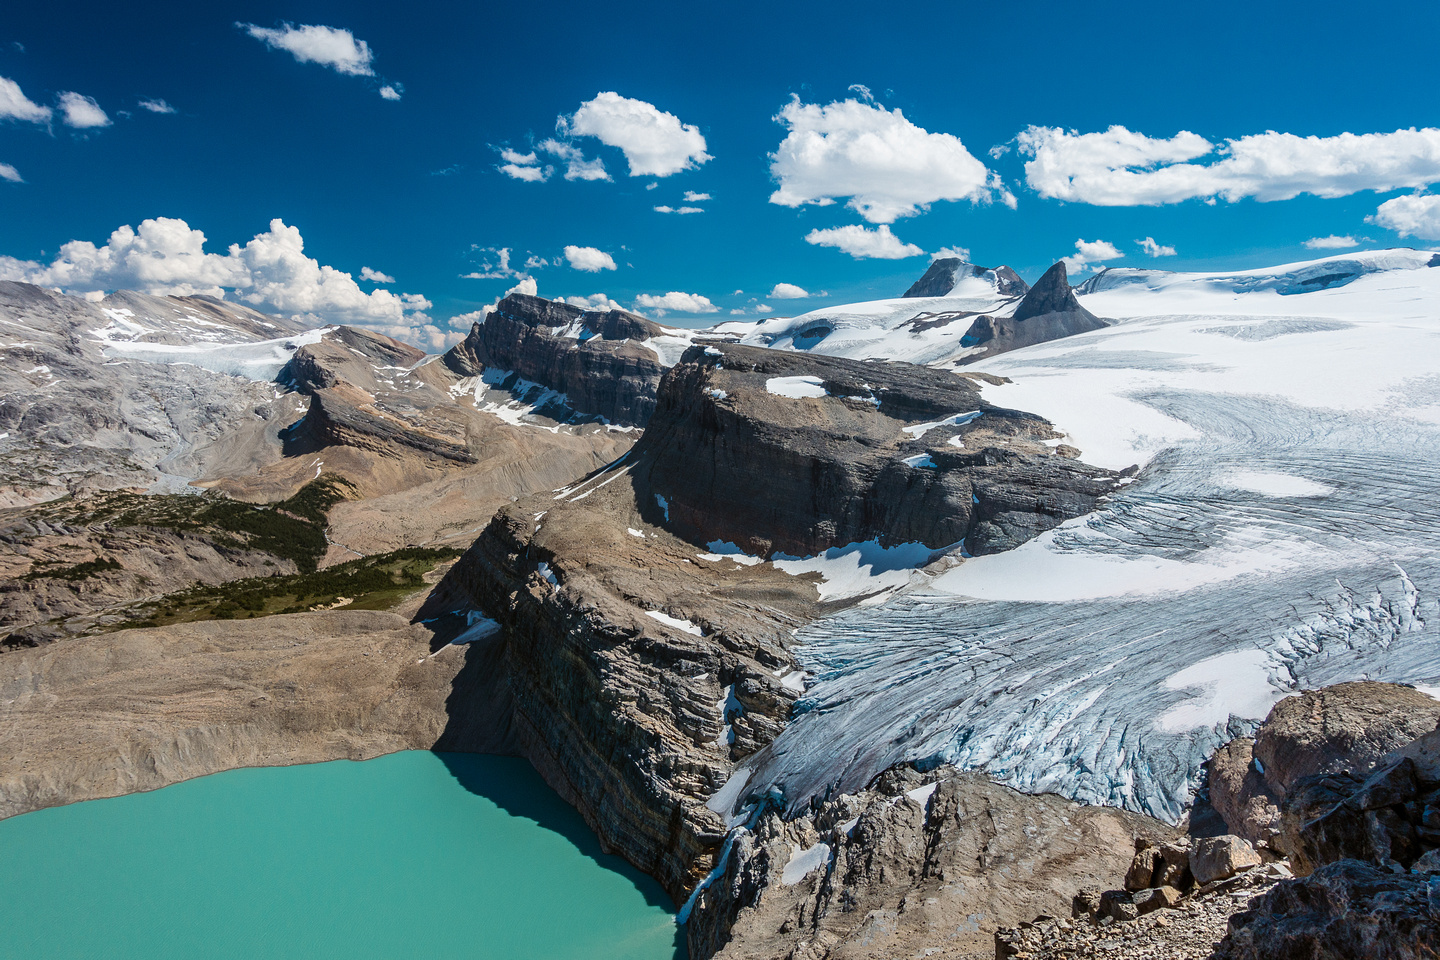 Looking over the Wapta Icefield as it plunges down to Iceberg Lake and eventually Bow Falls and Lake